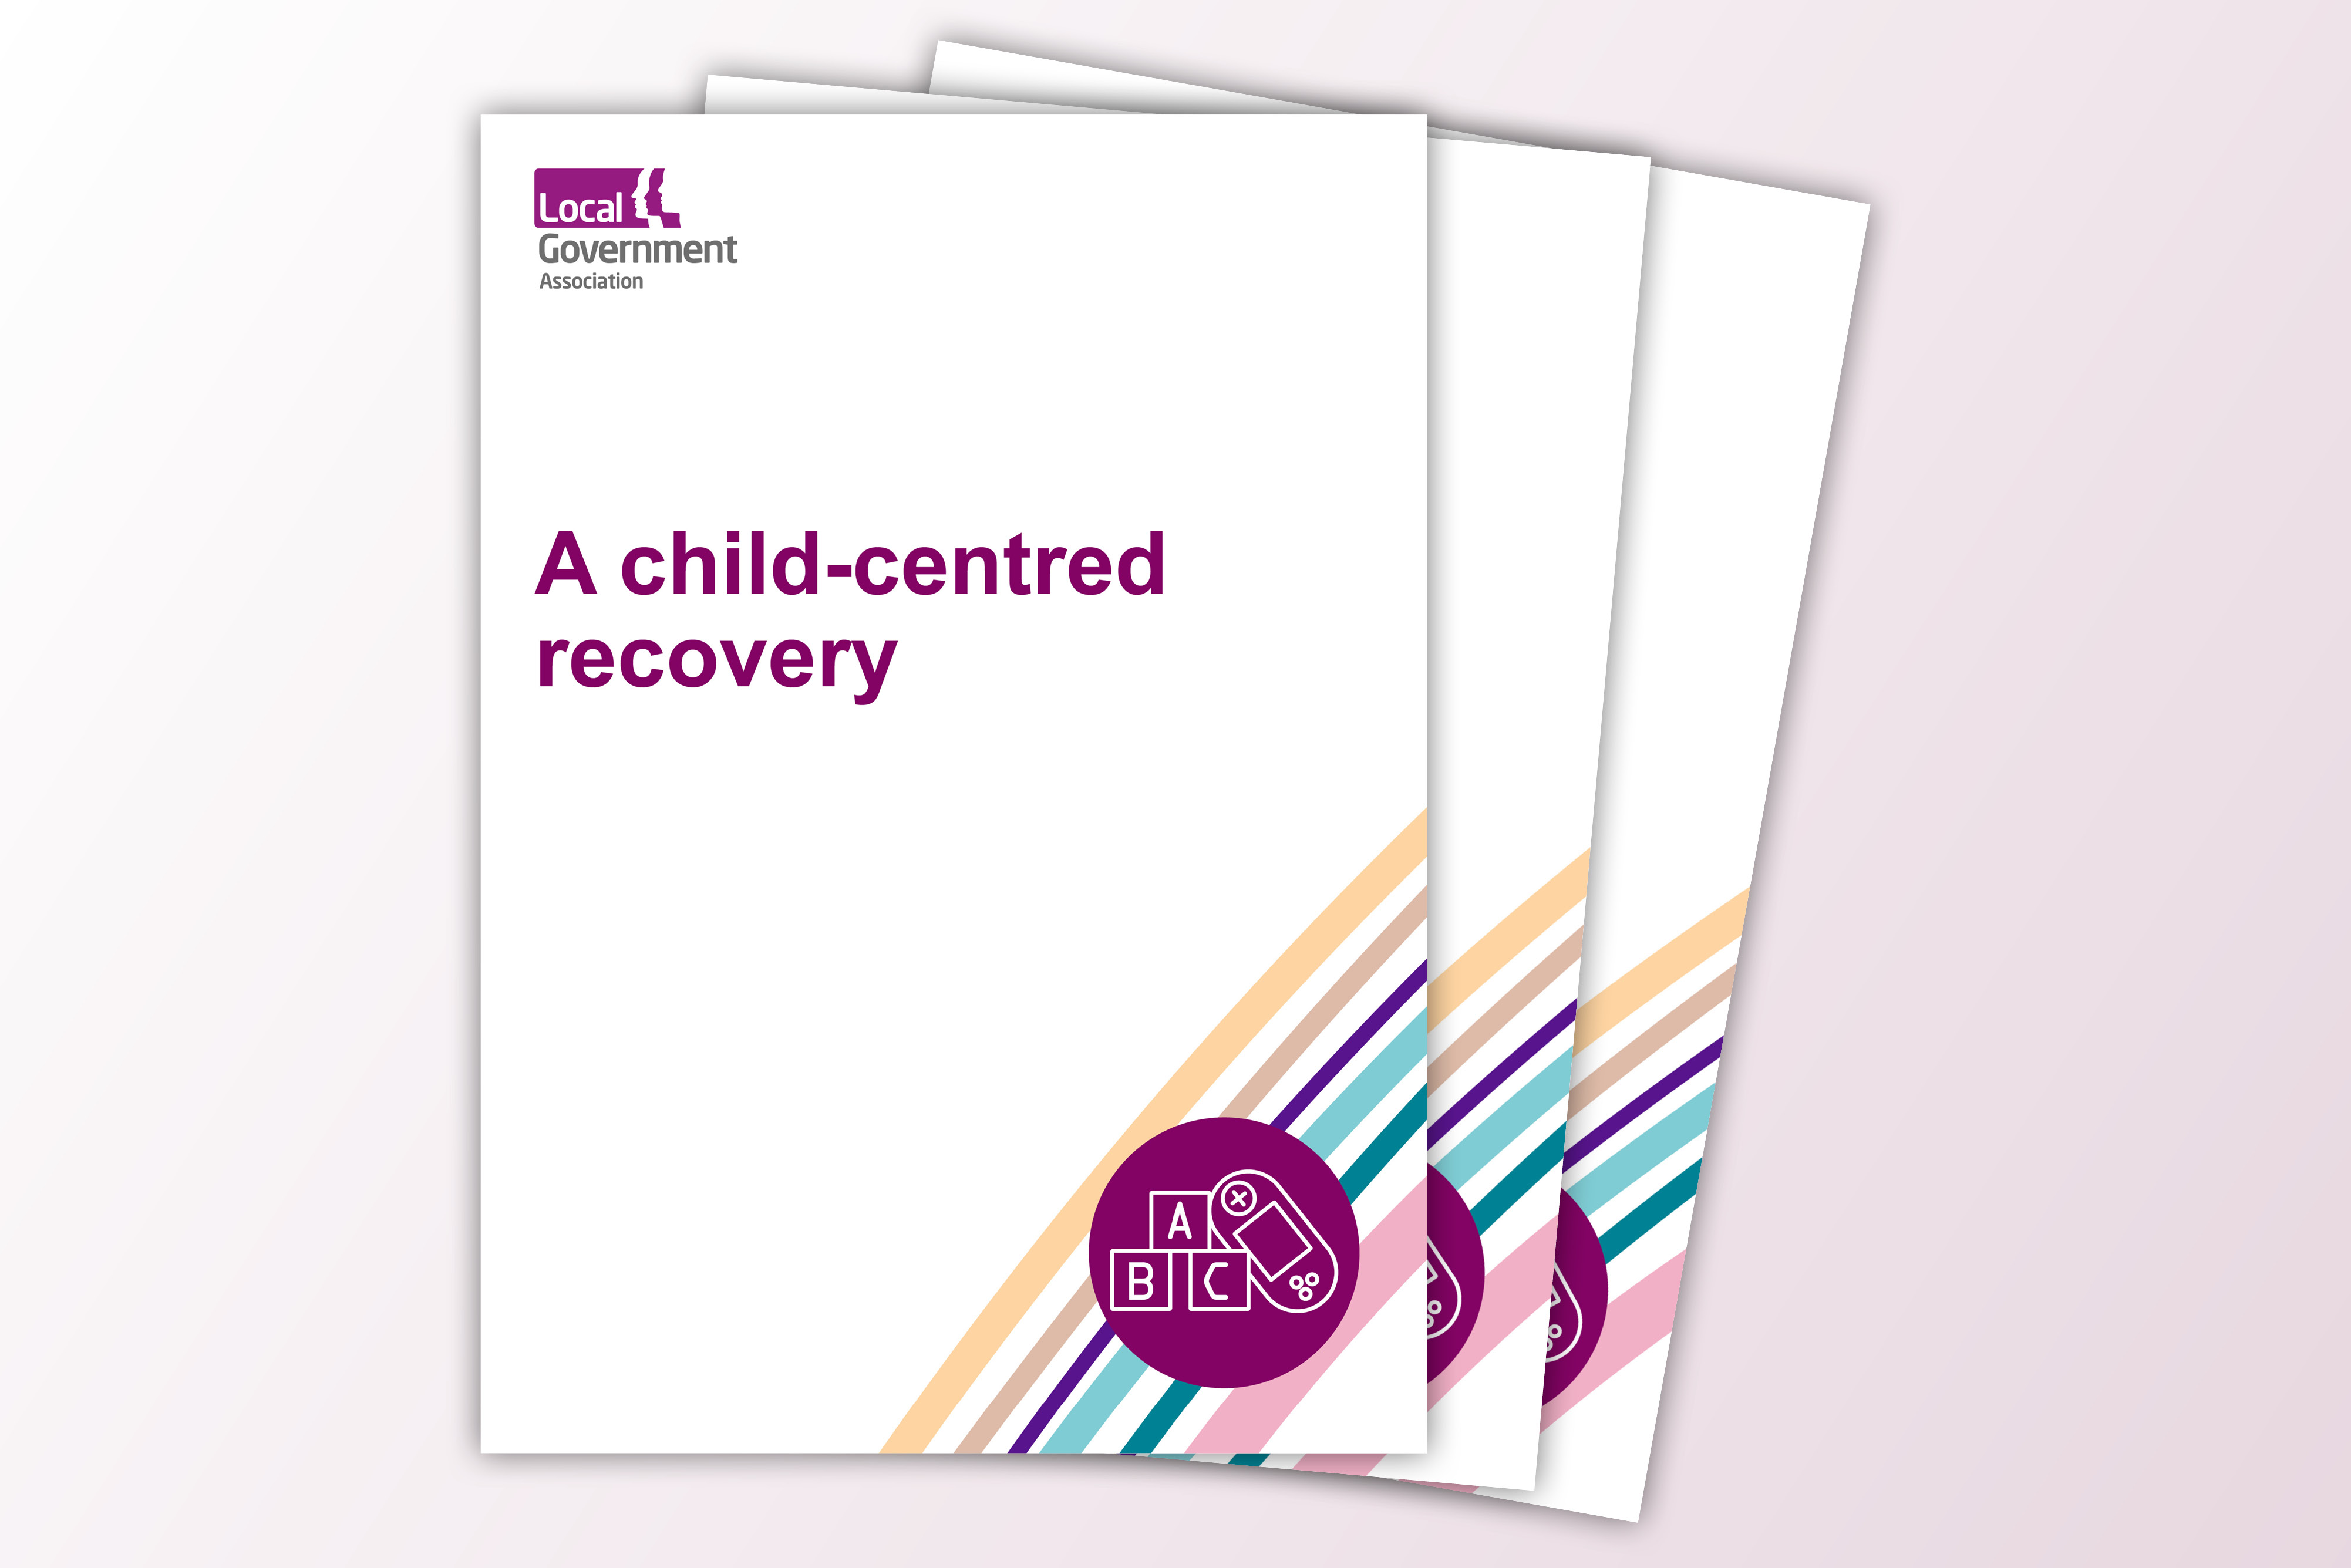 A child centred recovery front cover image